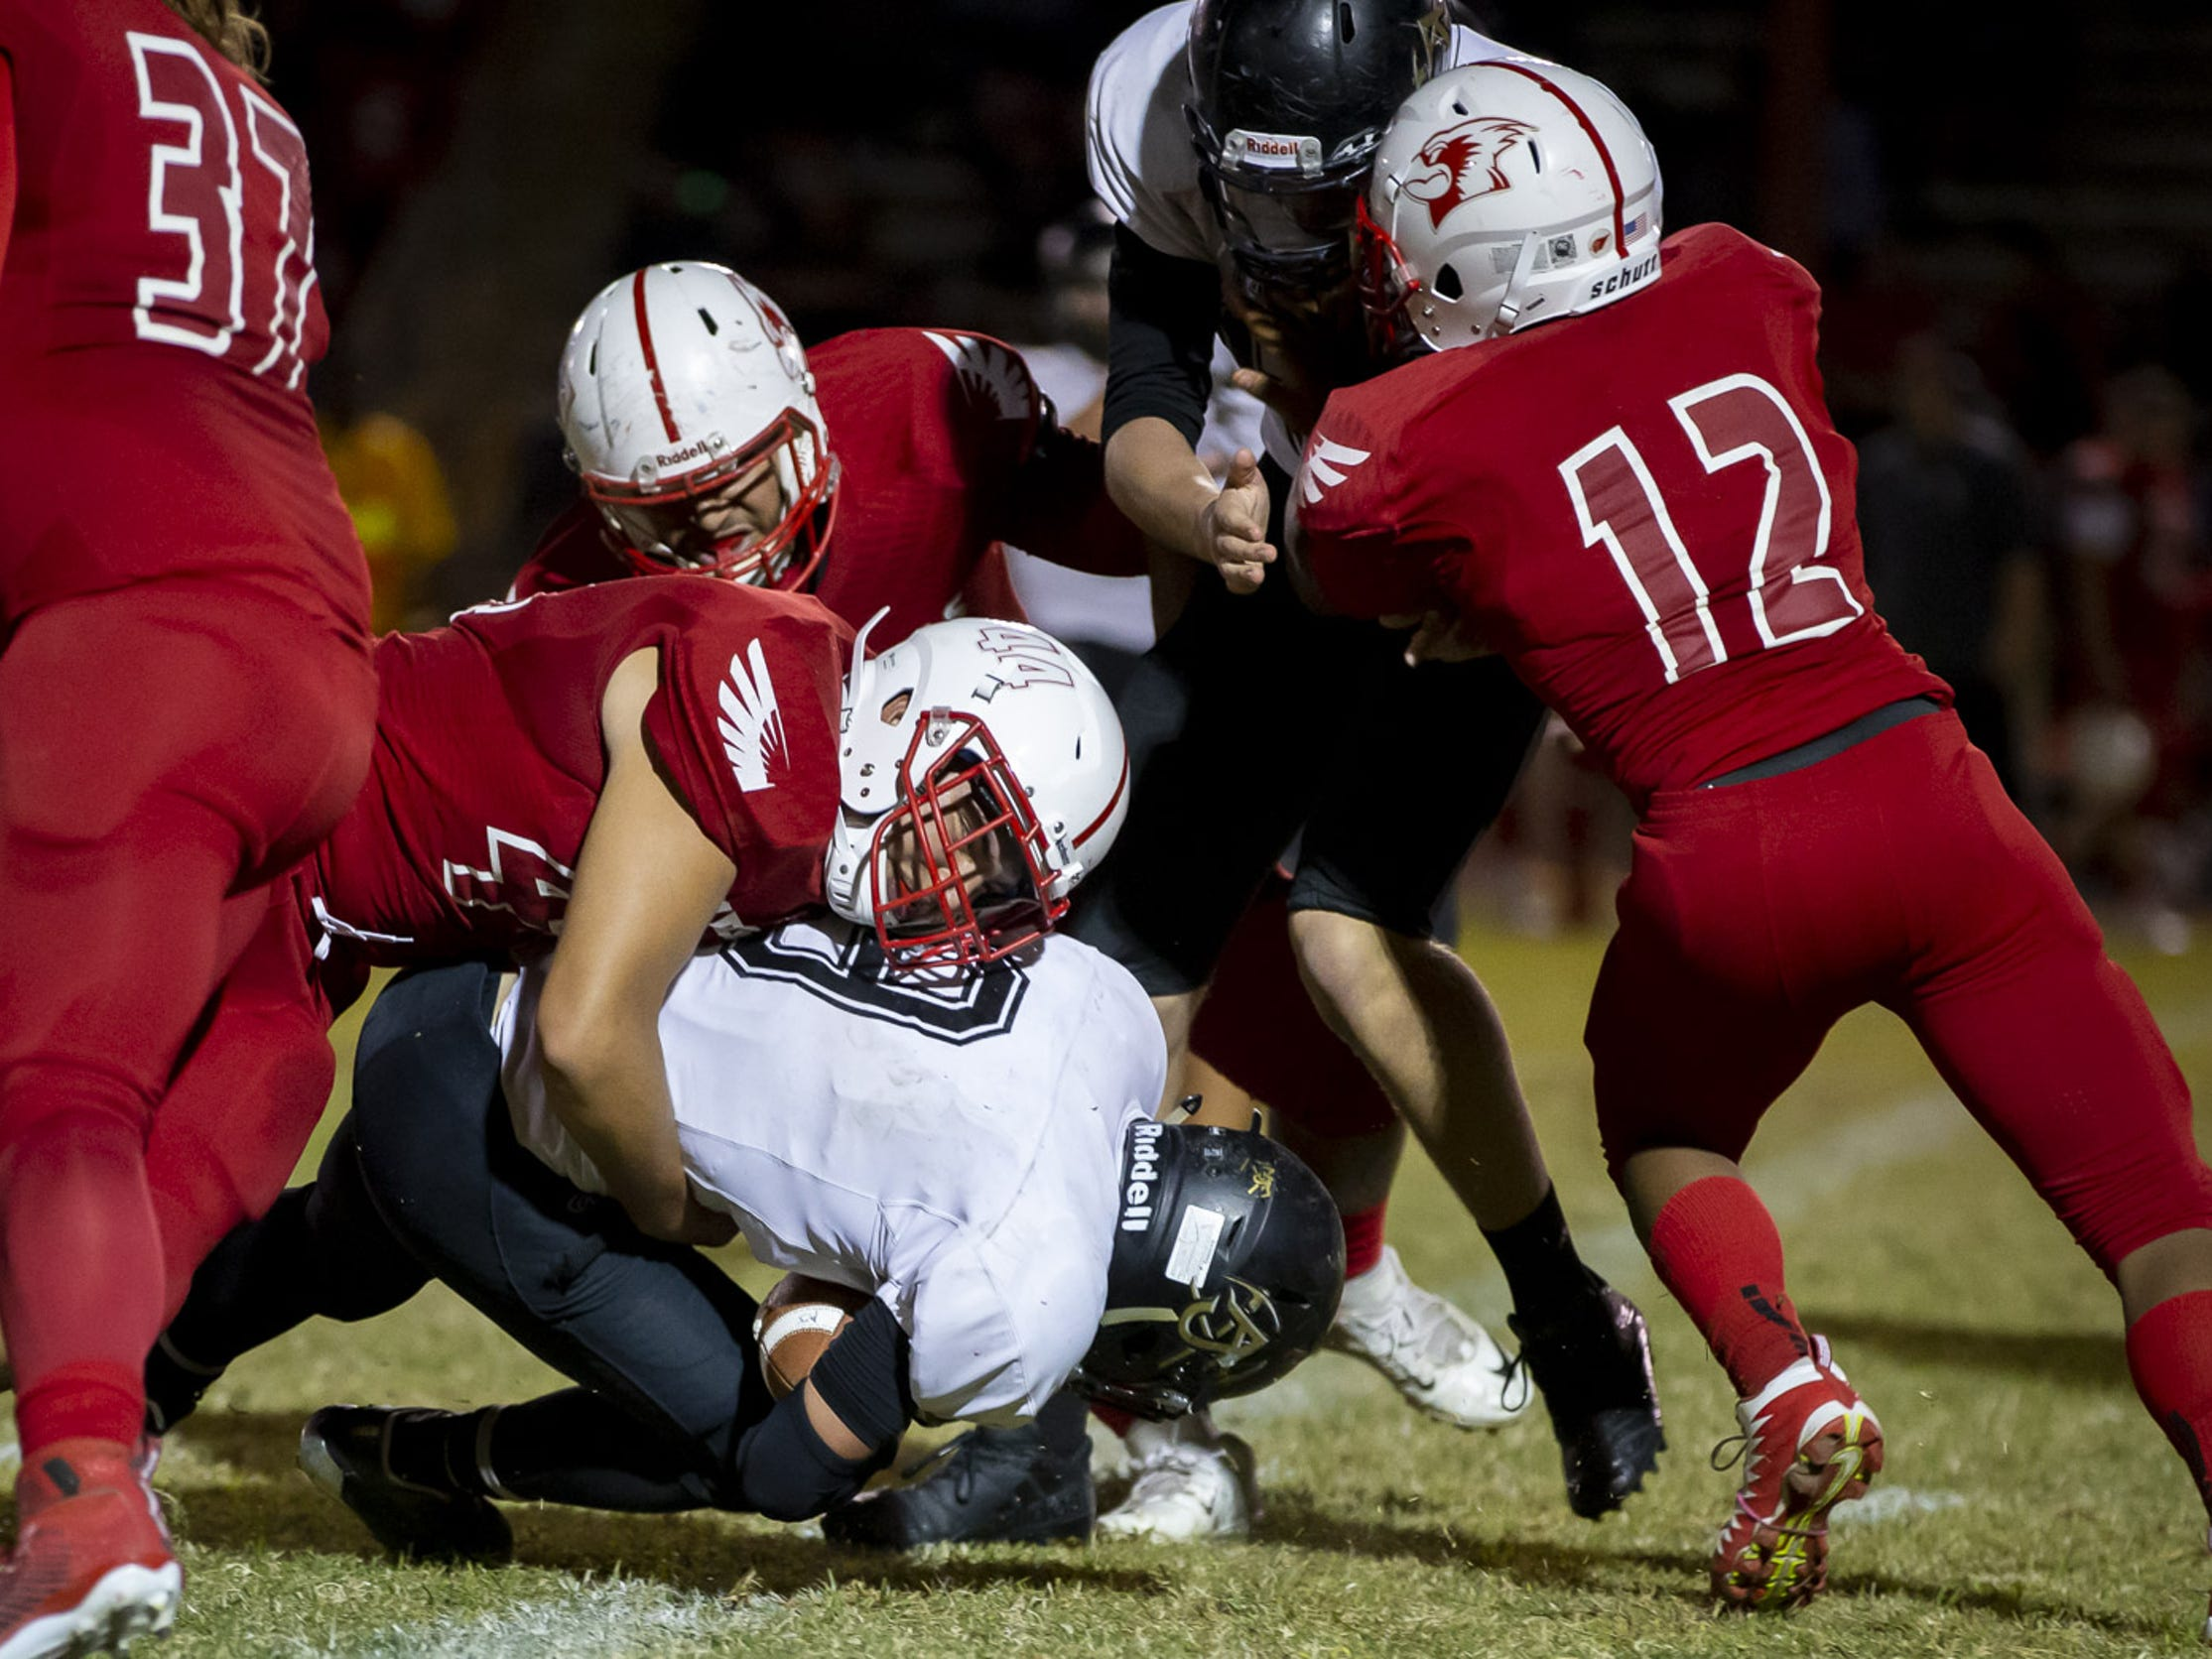 Senior running back William Lohman (9) of the Apache Junction Prospectors is tackled by senior middle linebacker Brannon Lopez (44) of the Glendale Cardinals at Glendale High School on Friday, October 19, 2018 in Glendale, Arizona. #azhsfb